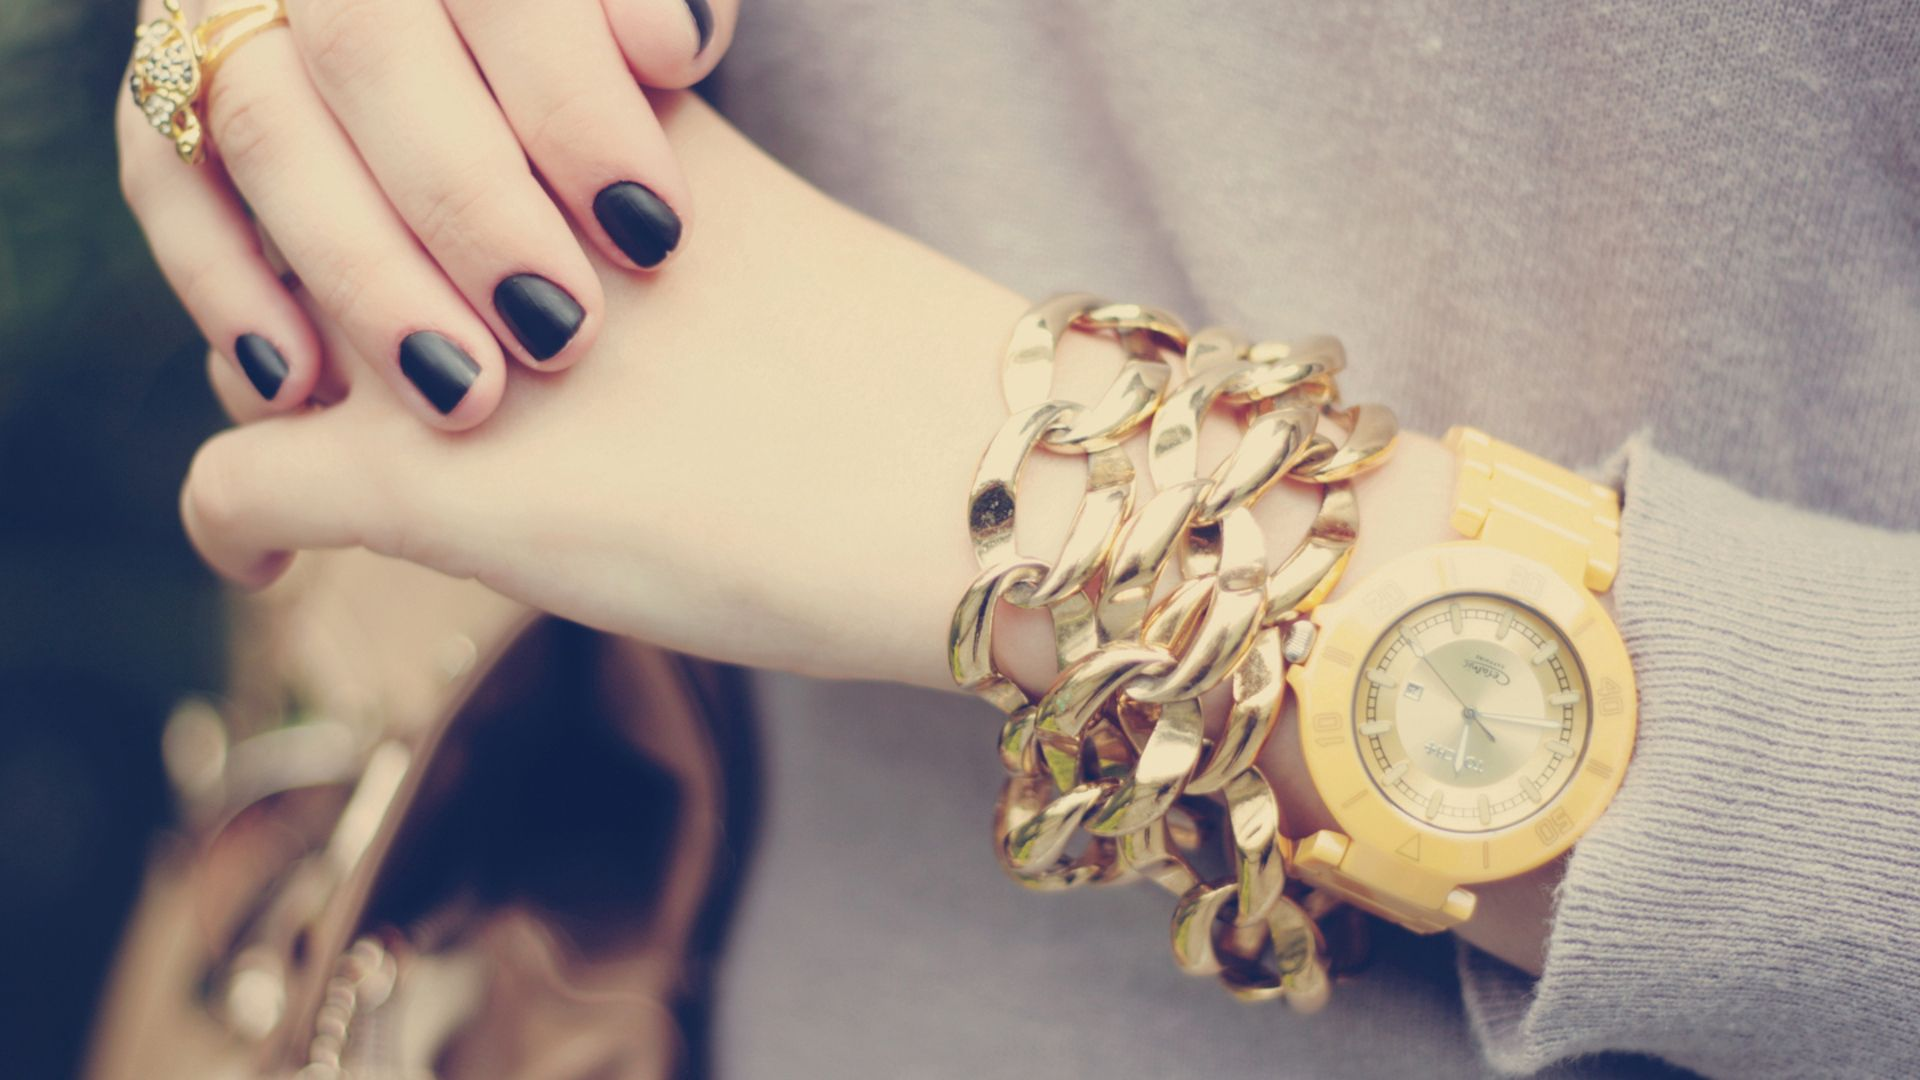 hands_watches_jewelry_manicure_girl_67504_1920x1080